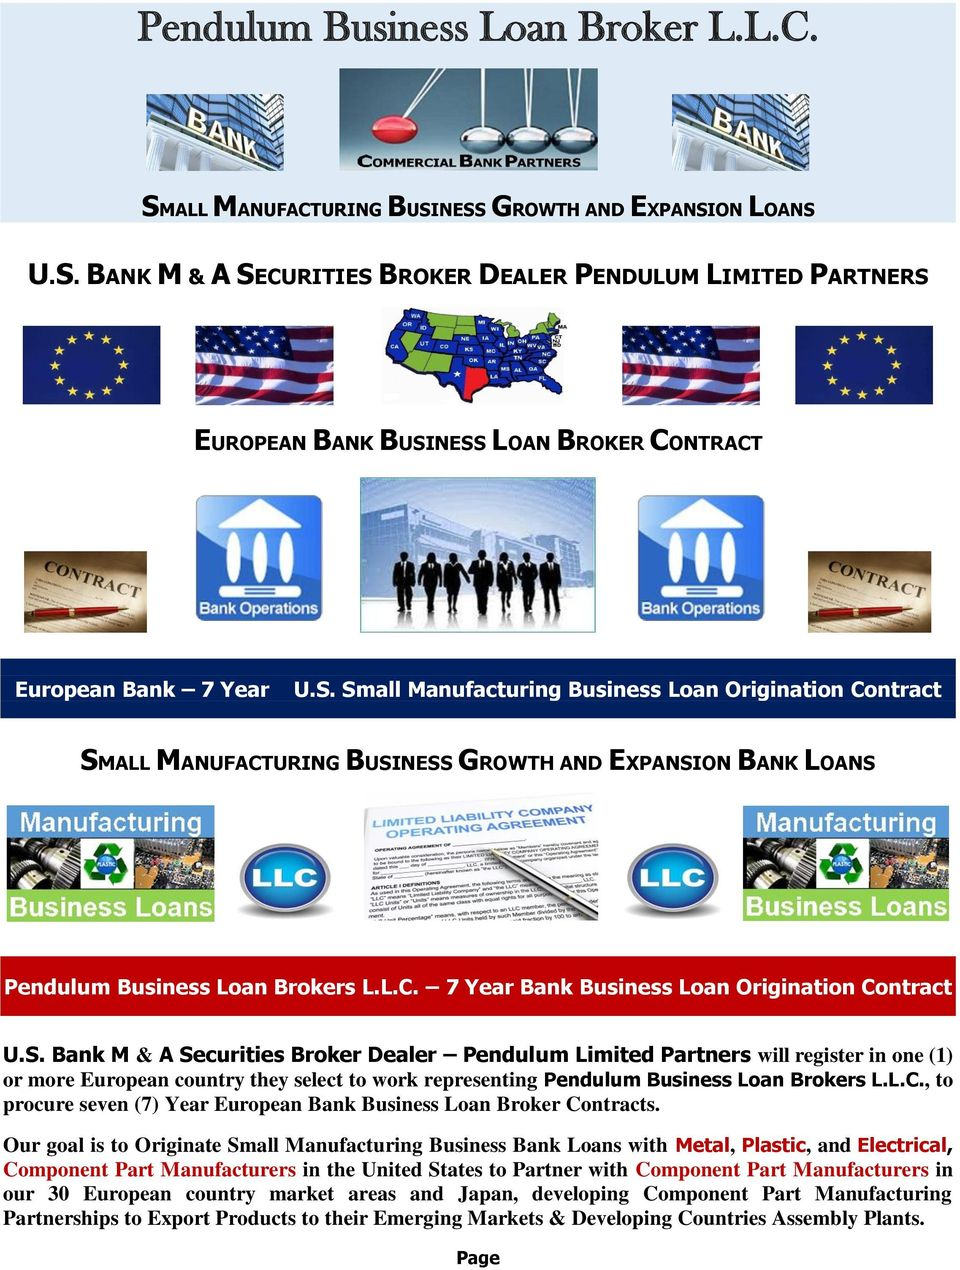 S. Bank M & A Securities Broker Dealer Pendulum Limited Partners will register in one (1) or more European country they select to work representing Pendulum Business Loan Brokers L.L.C.